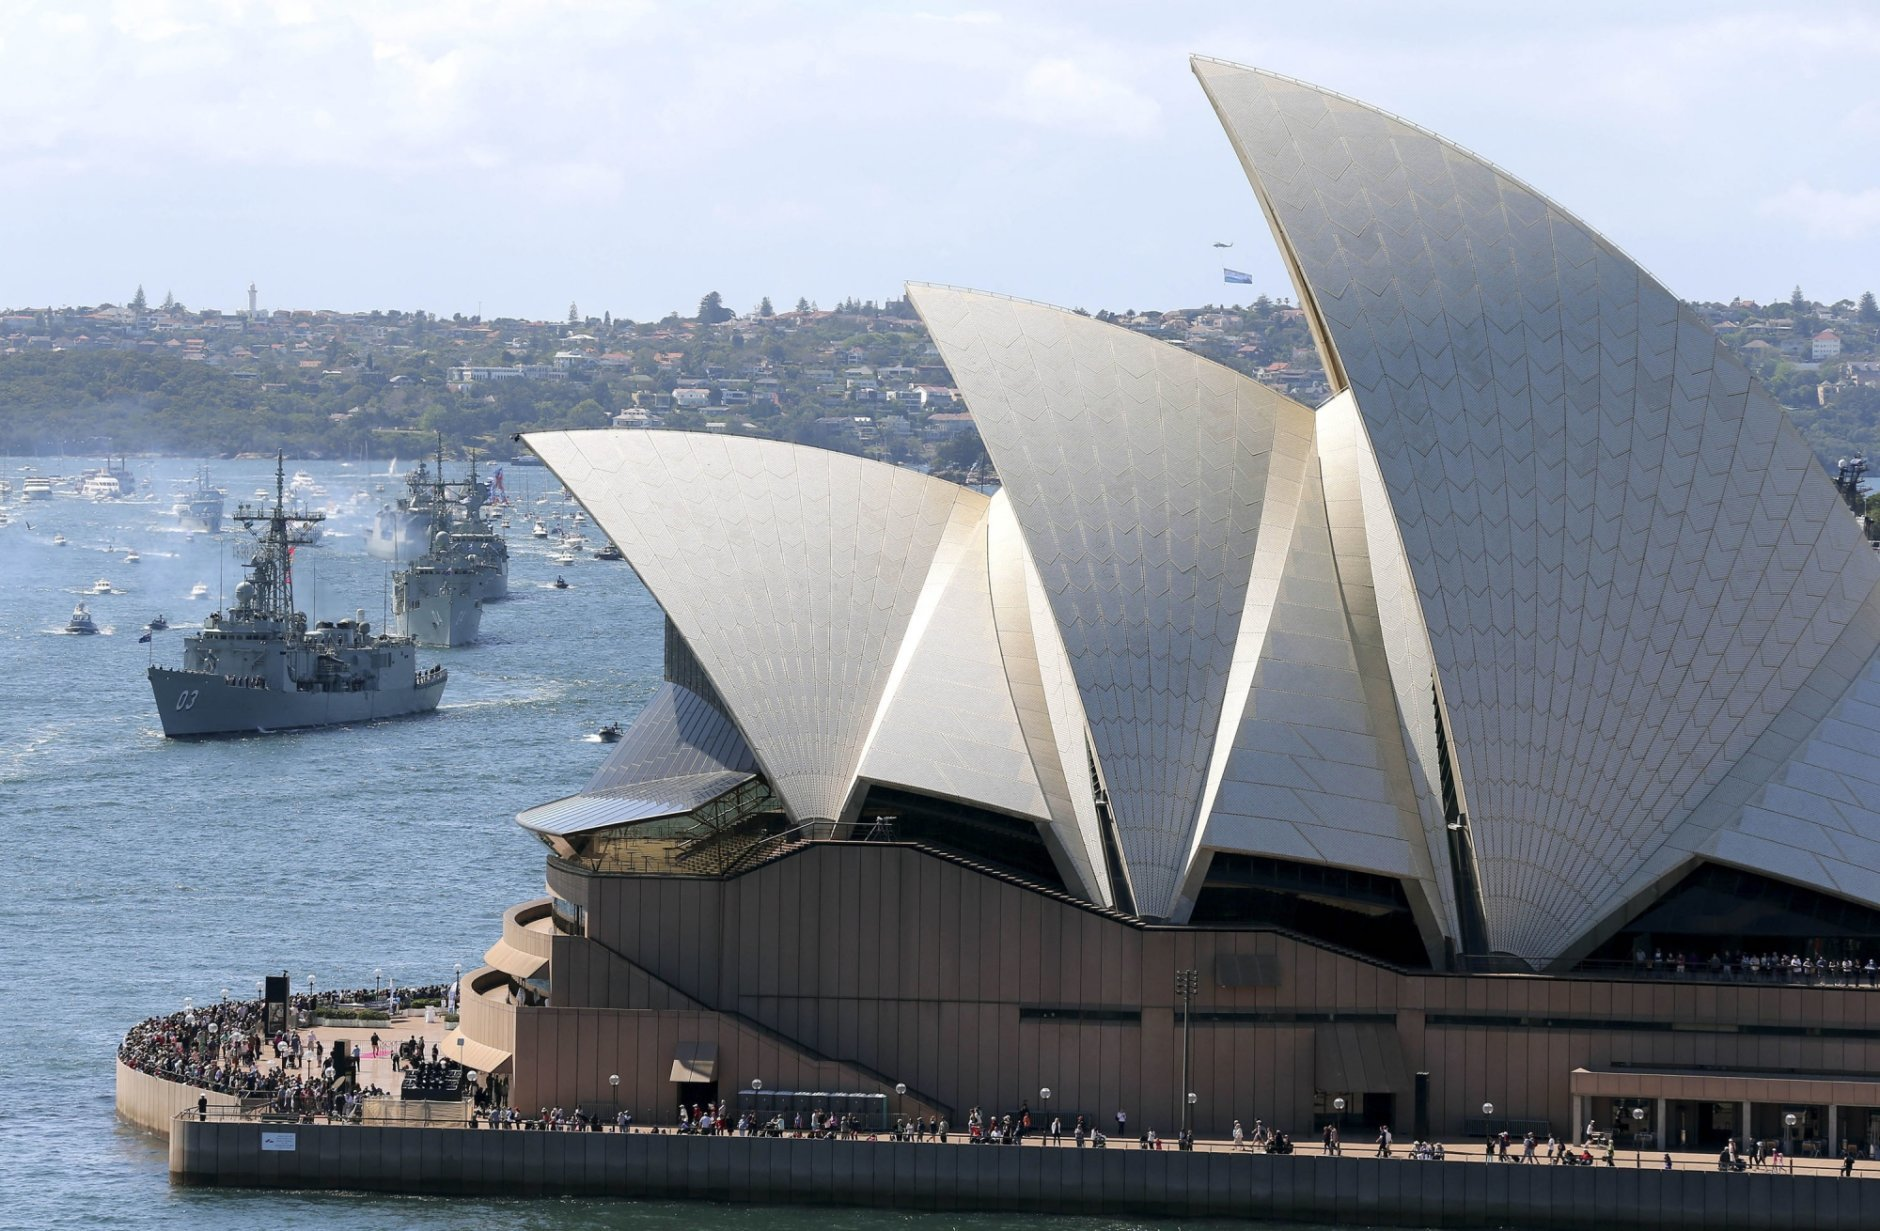 FILE - In this Oct. 4, 2013, file photo, the Opera House is seen as Australian warships from front, HMAS Sydney, Darwin and Perth enter the harbour in Sydney, Australia, during the International Fleet review.  Minister for Cities, Urban Infrastructure and Population Alan Tudge said Tuesday, Oct. 9, 2018, that his government wants to cut the number of immigrants moving to Sydney and Melbourne in a bid to reduce congestion in Australia's two biggest cities. (AP Photo/Rob Griffith, File)